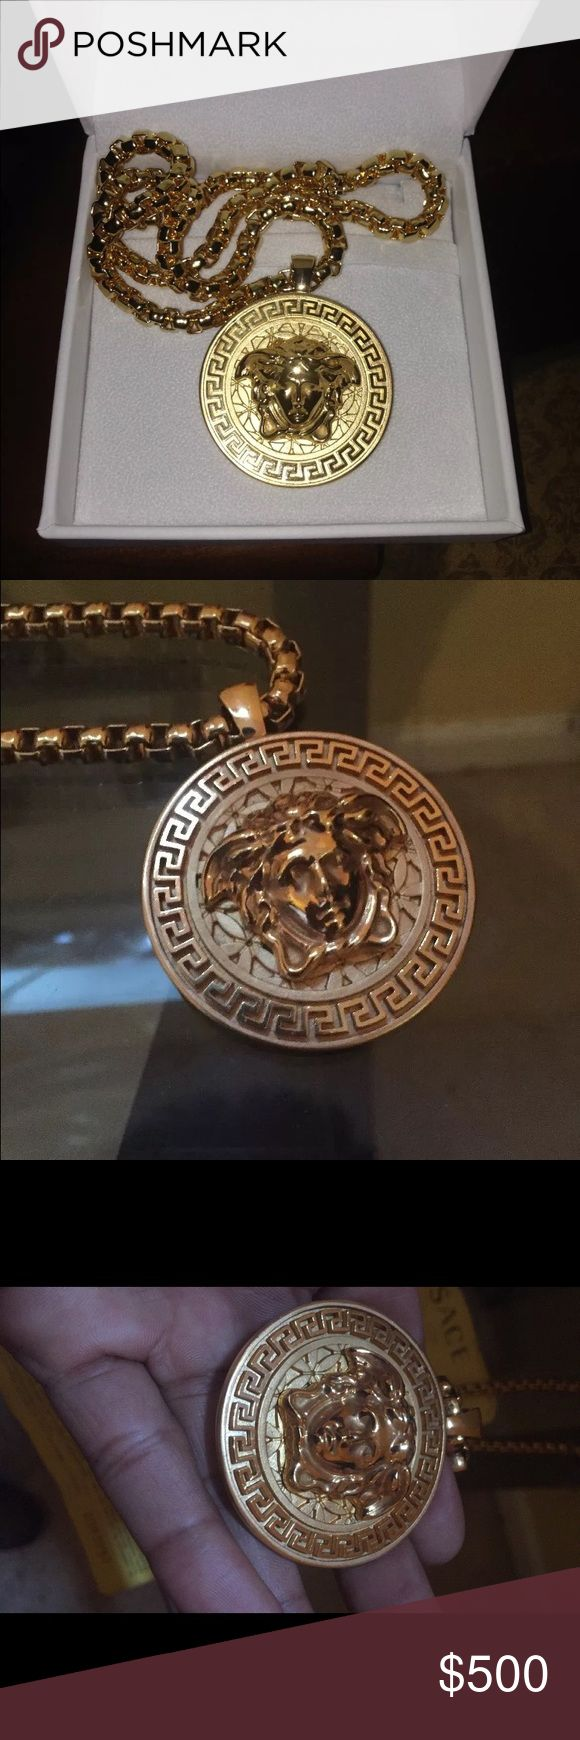 Versace Chain Men's Versace chain comes w/ receipt  worn a handful of times and purchased for my Highschool prom Gold Medusa medallion necklace approx. 24in. in length  Made in Italy. Versace Jewelry Necklaces